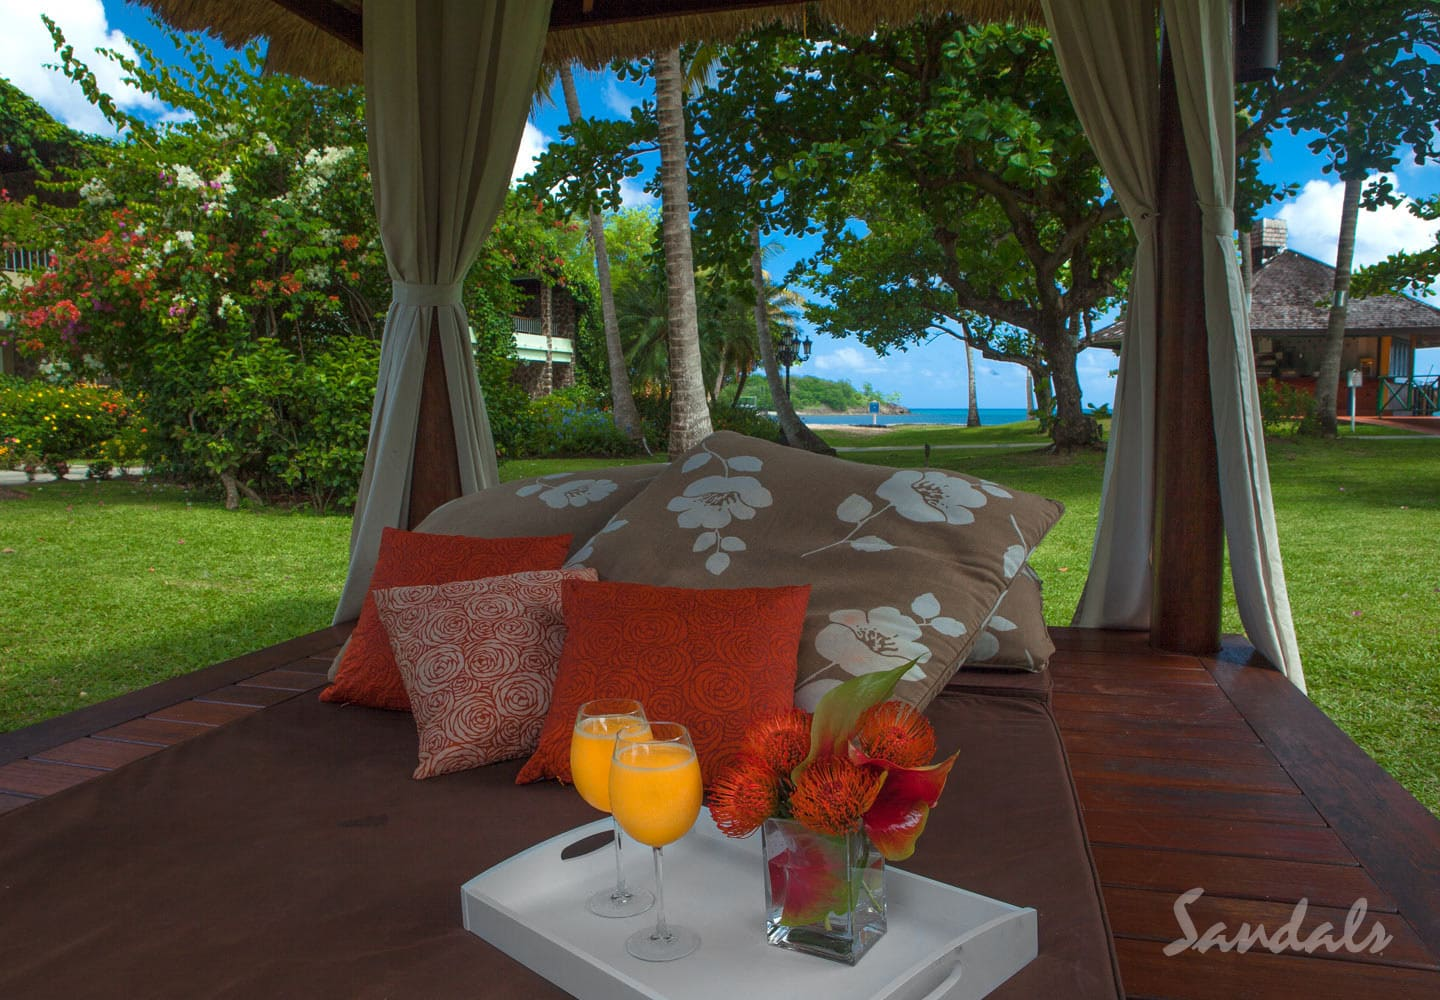 garden lounger with a bouquet of flowers, pillows and two cocktail glasses at the Sandals Halcyon beach resort in St Lucia, trip can be booked with online travel agency Southern Travel Agency Augusta, GA